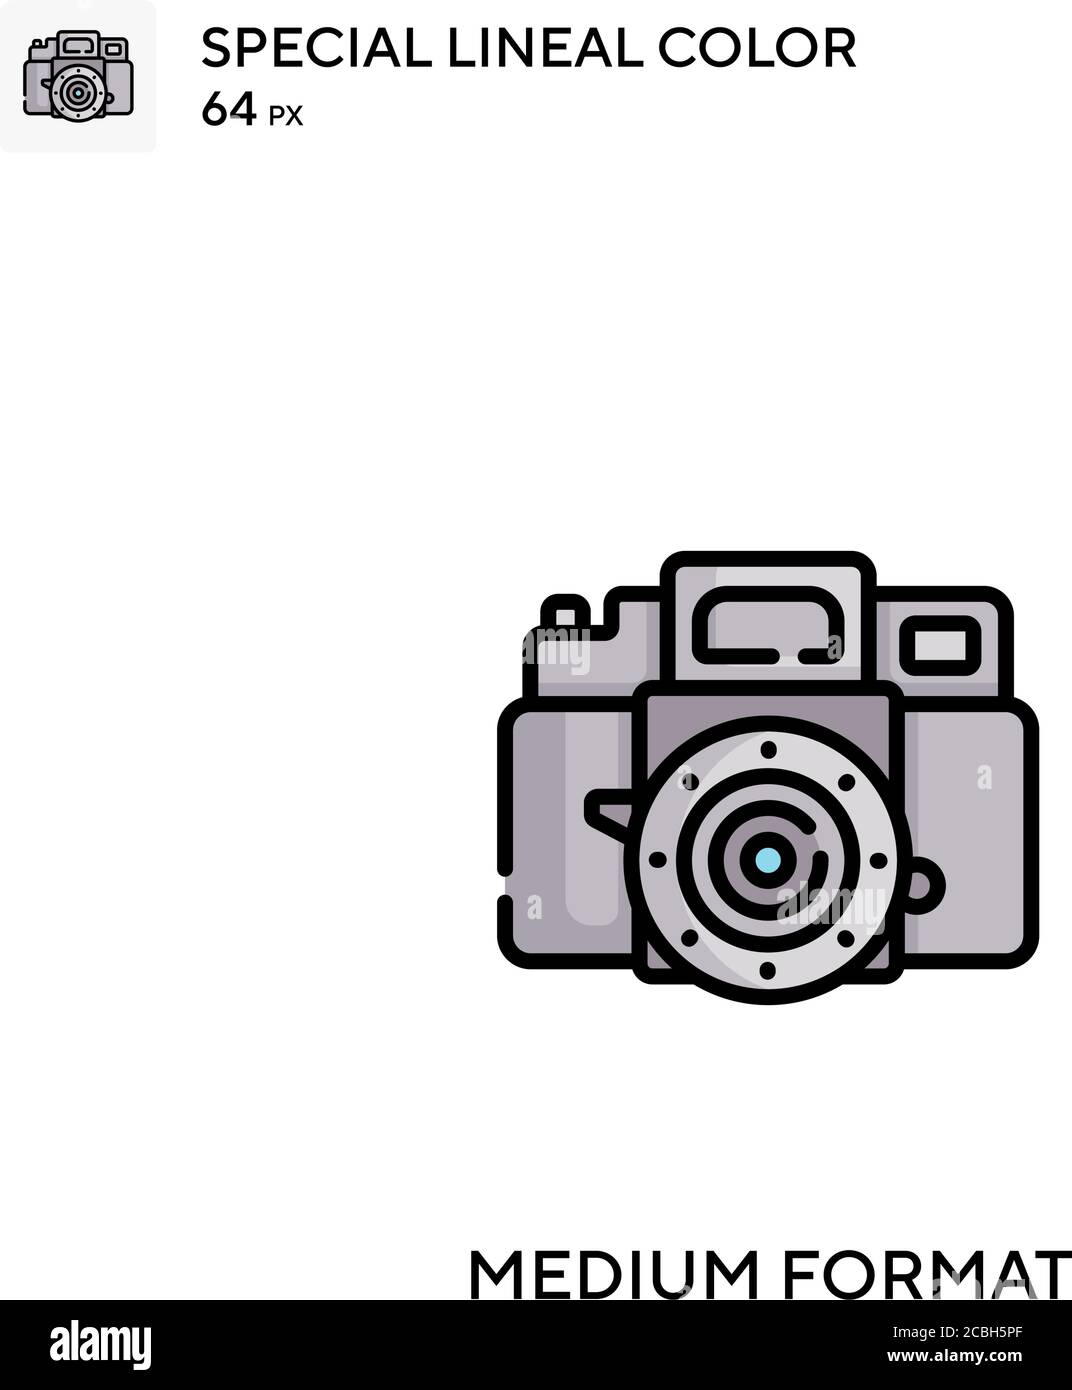 Medium format special lineal color vector icon. Medium format icons for your business project Stock Vector